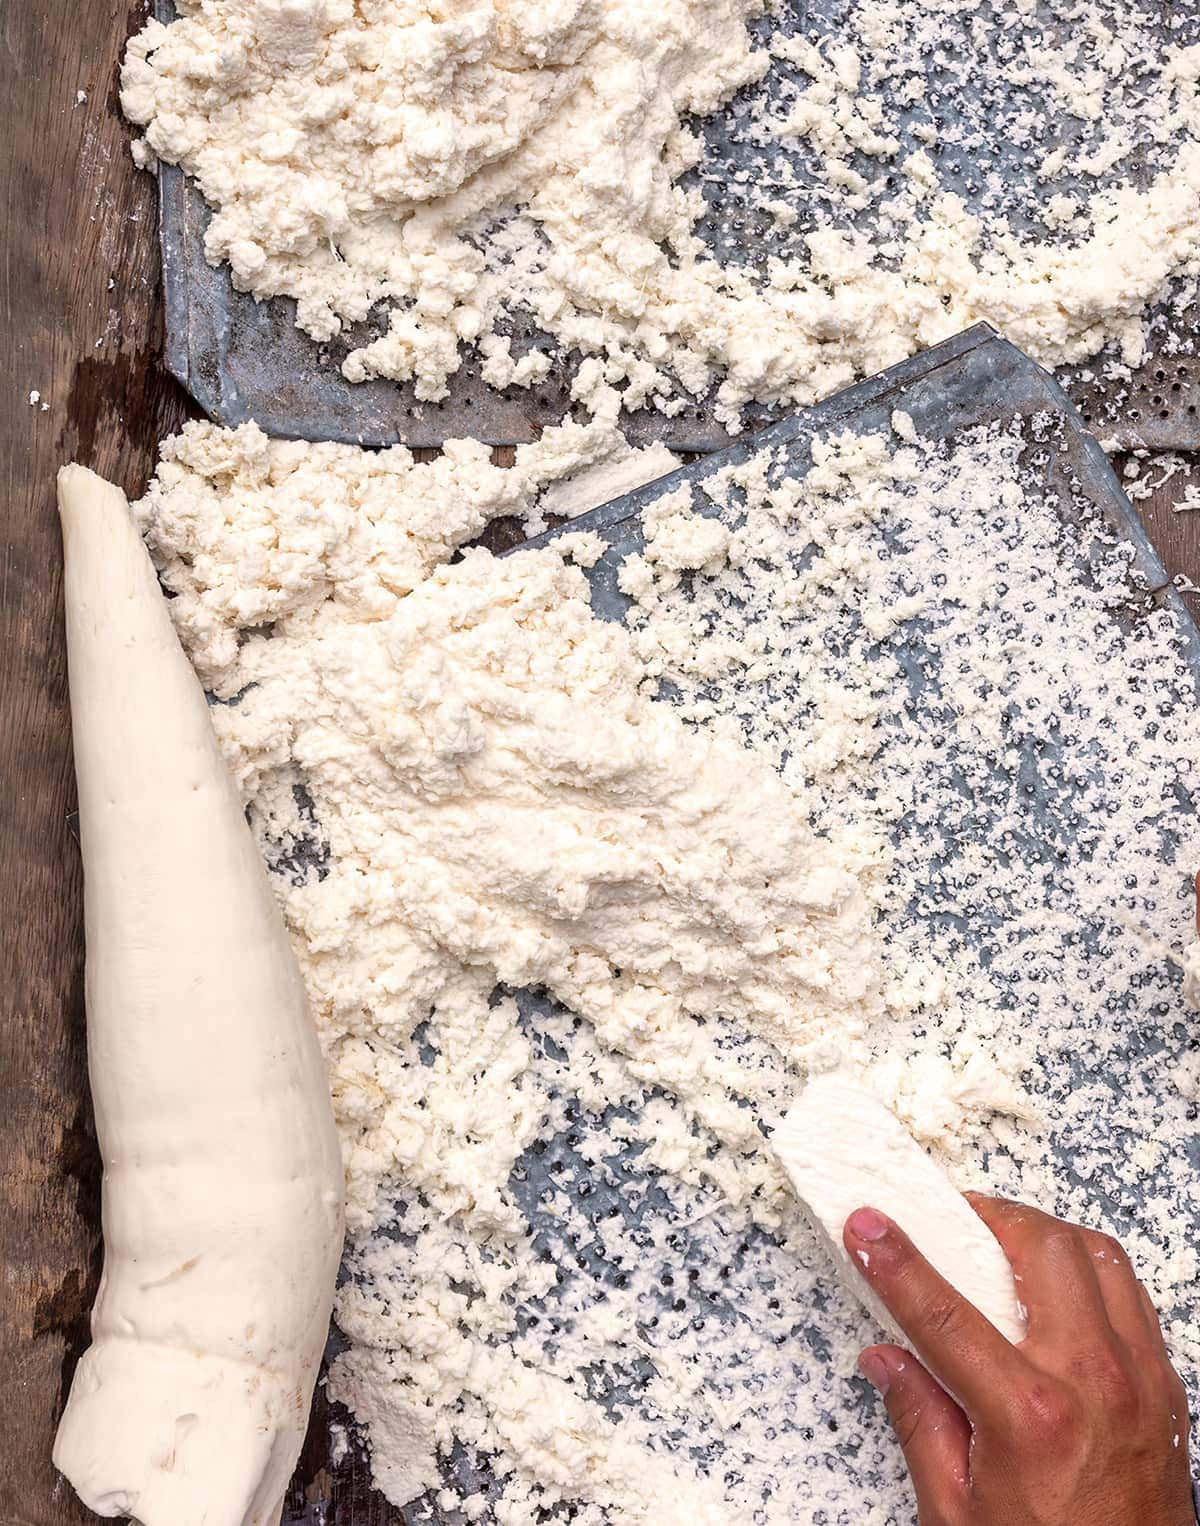 grating tapioca by hand